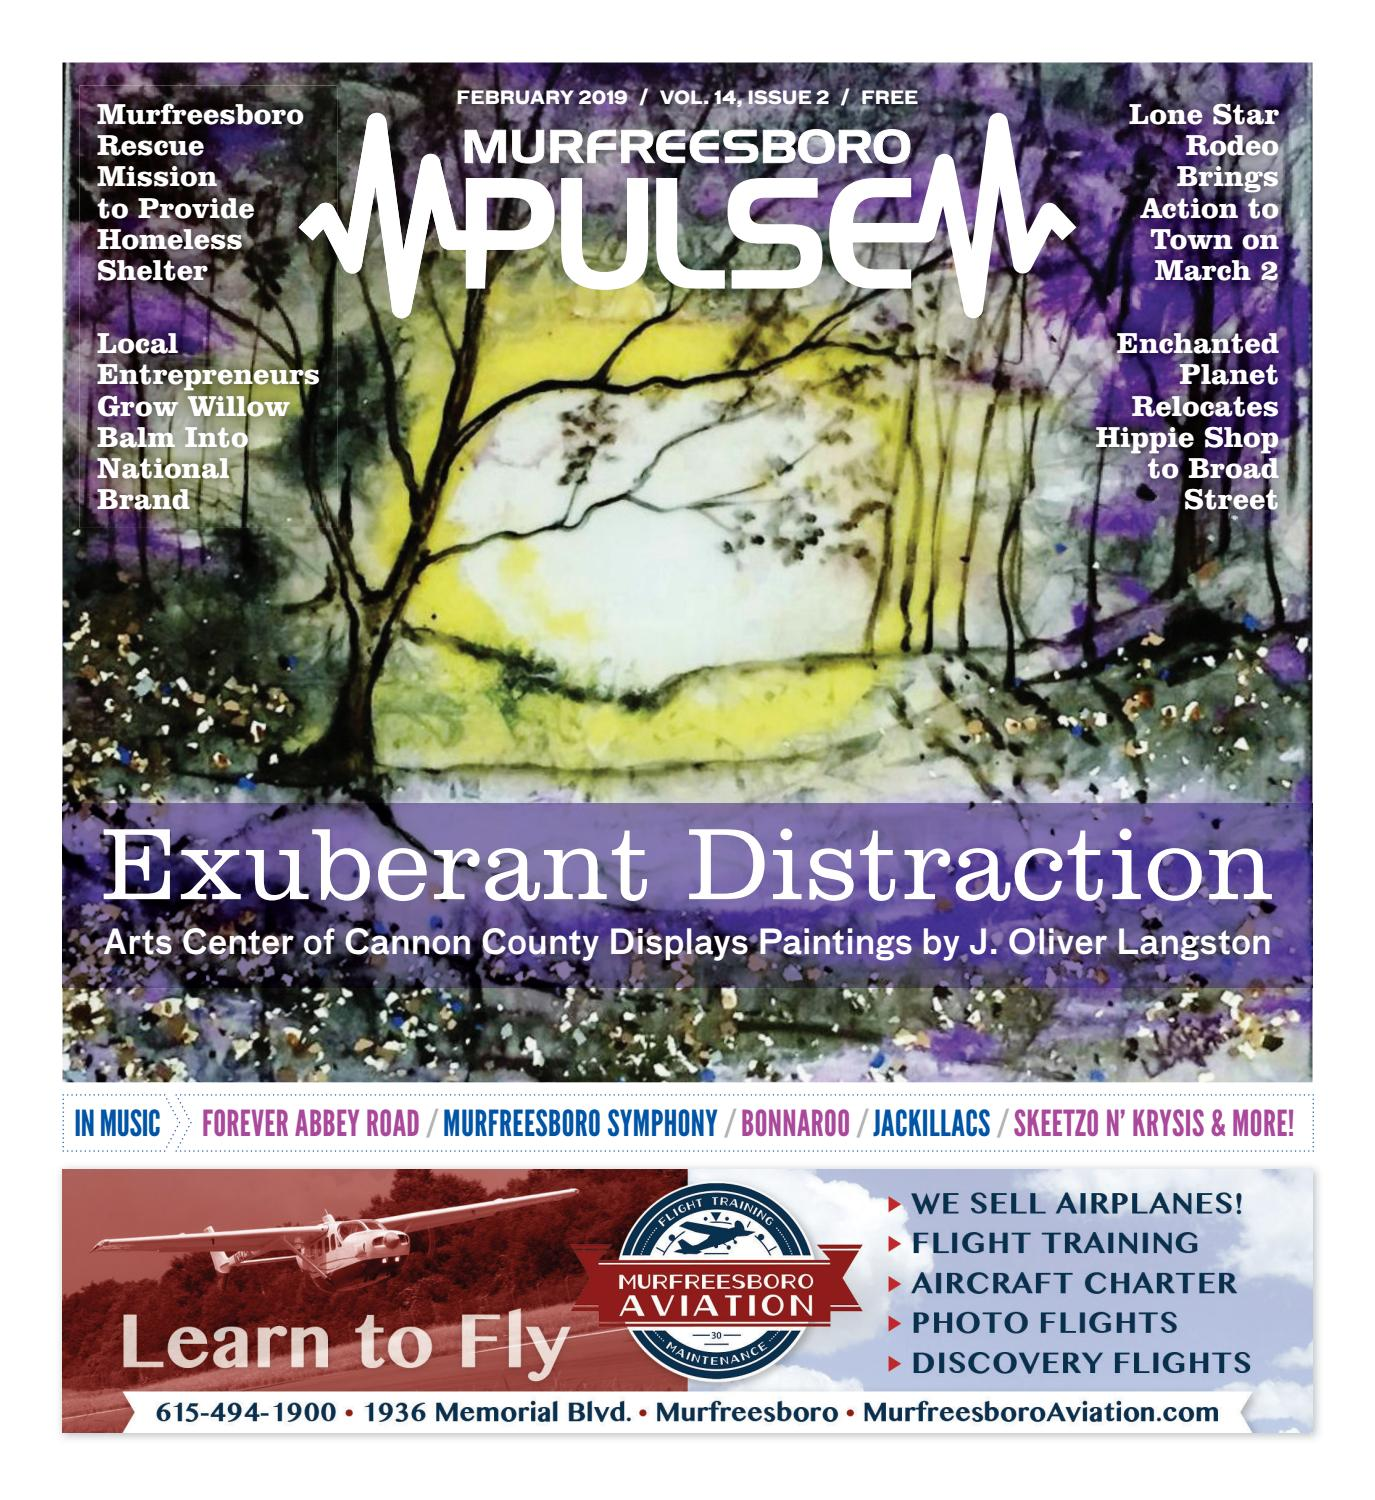 696bf763c February 2019 Murfreesboro Pulse by The Murfreesboro Pulse - issuu